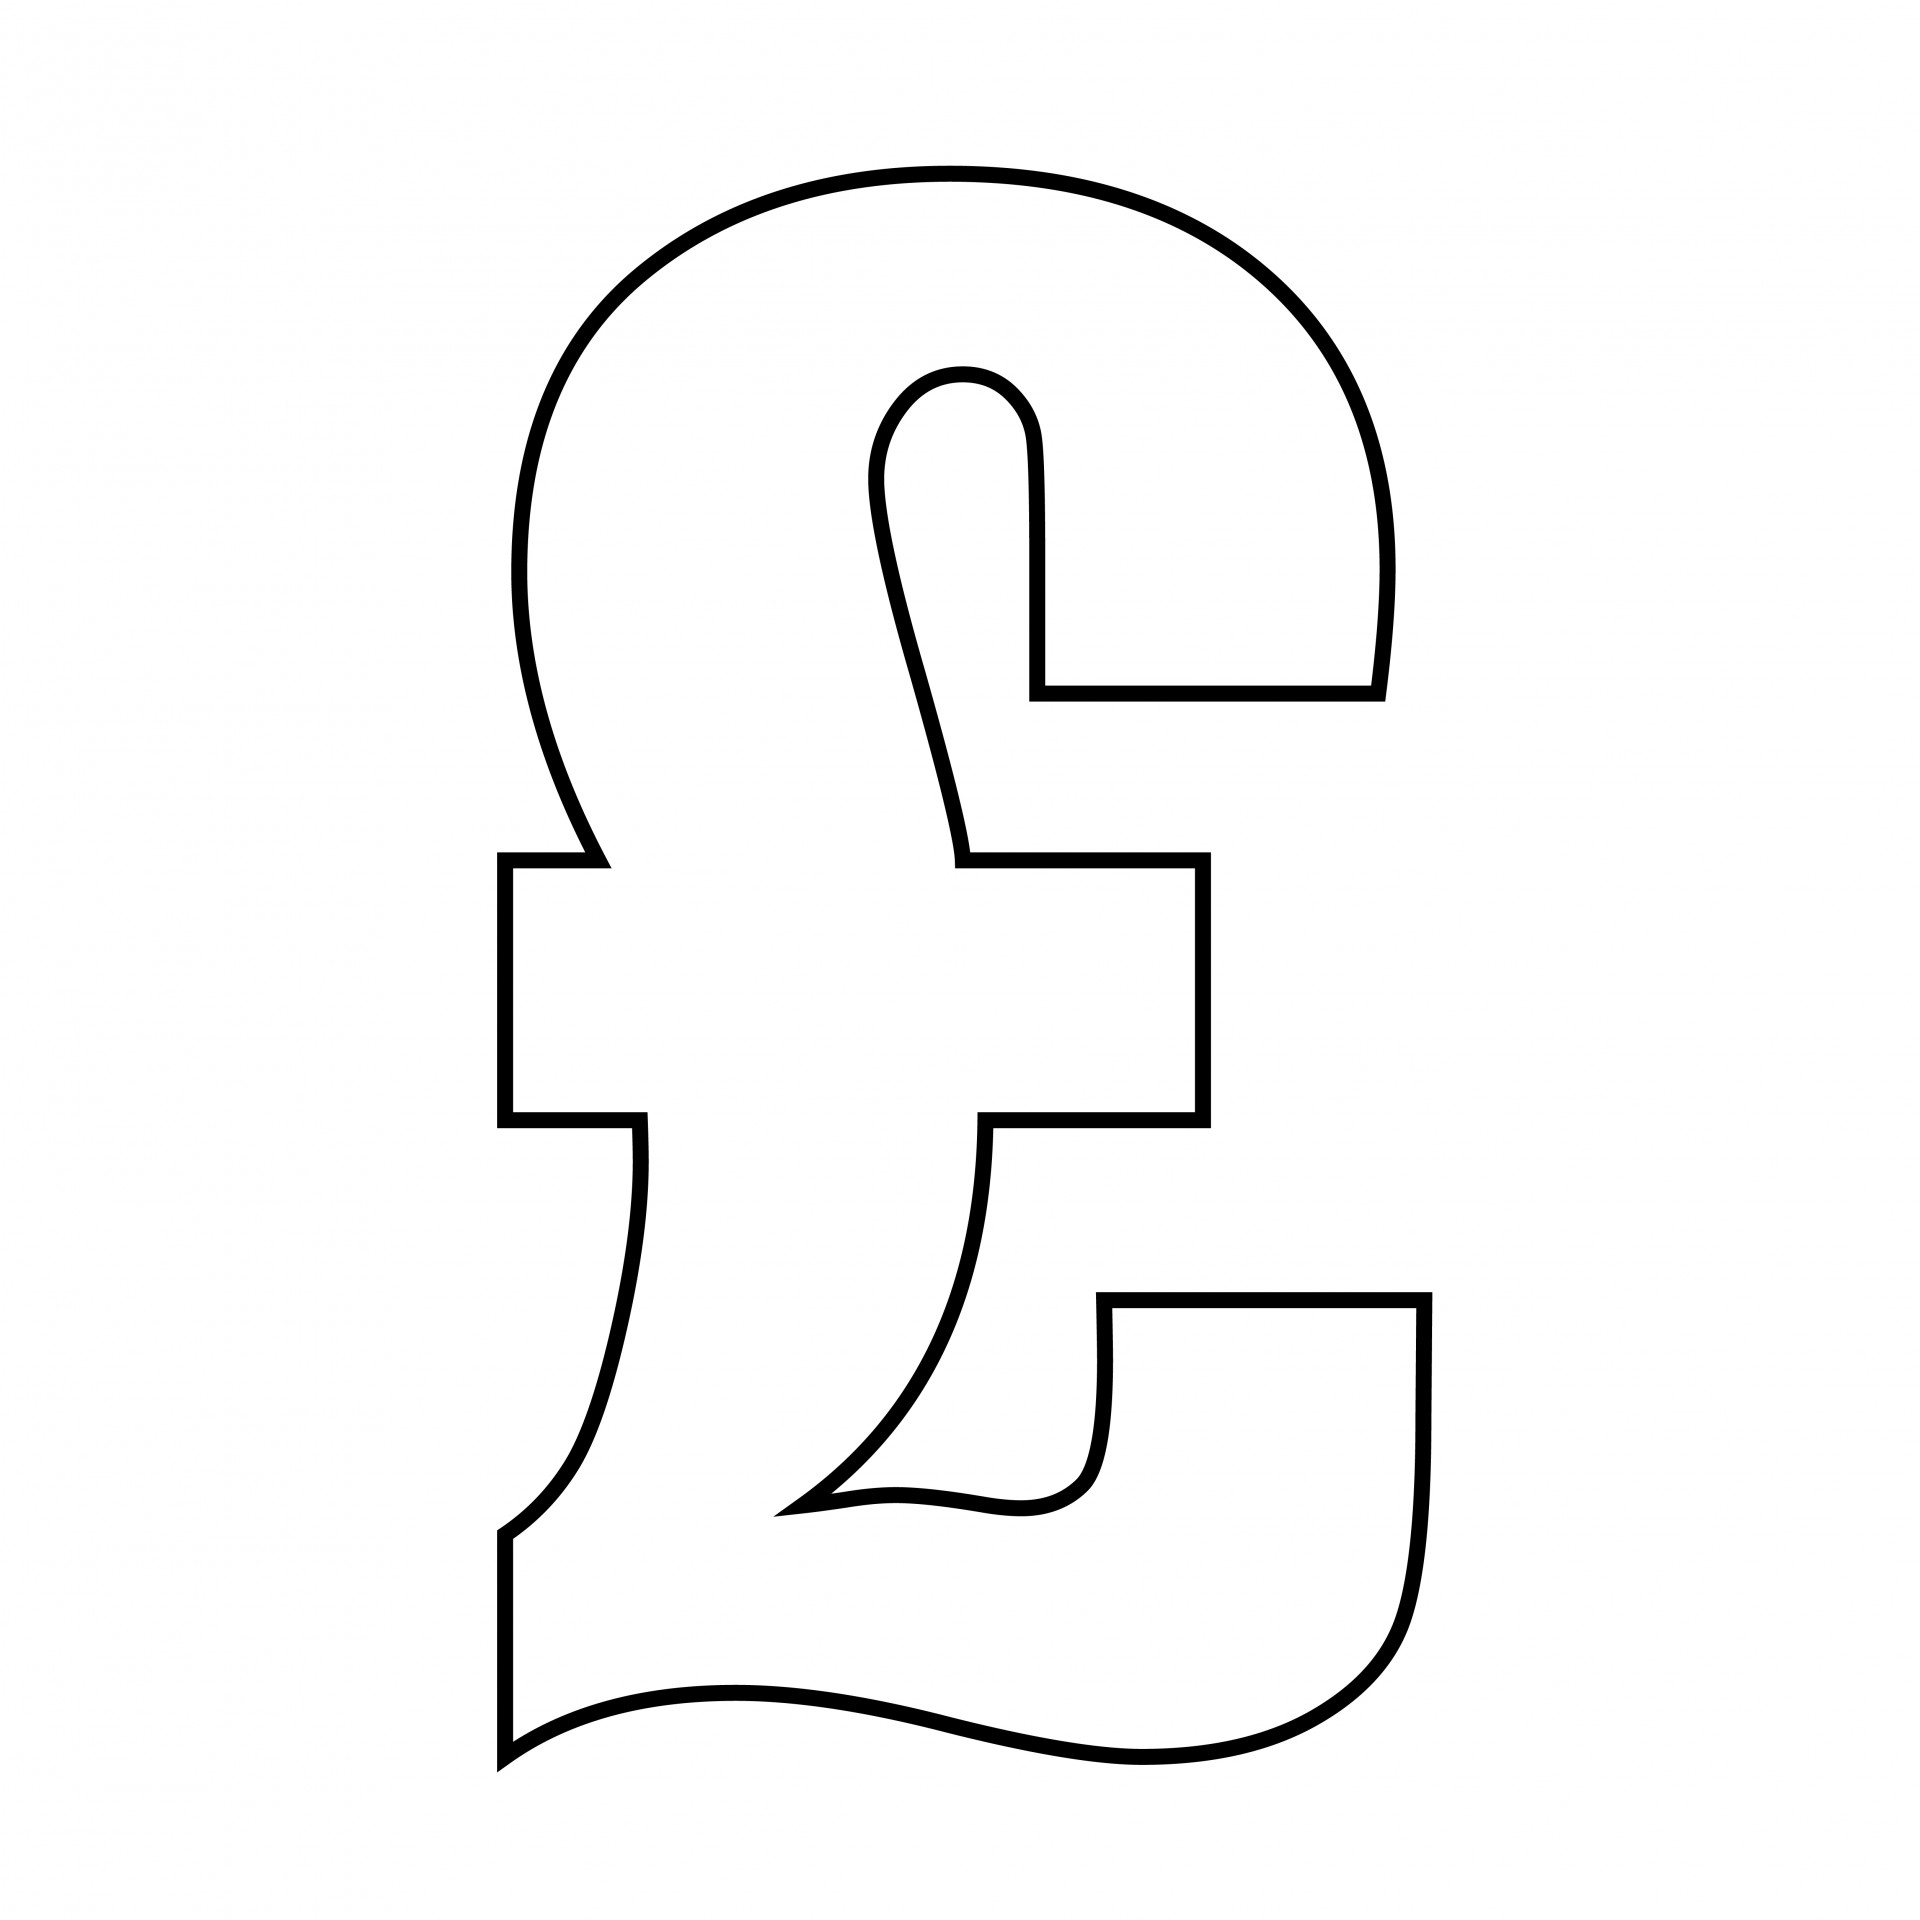 Pound Sign Outline Clipart Free Stock Photo